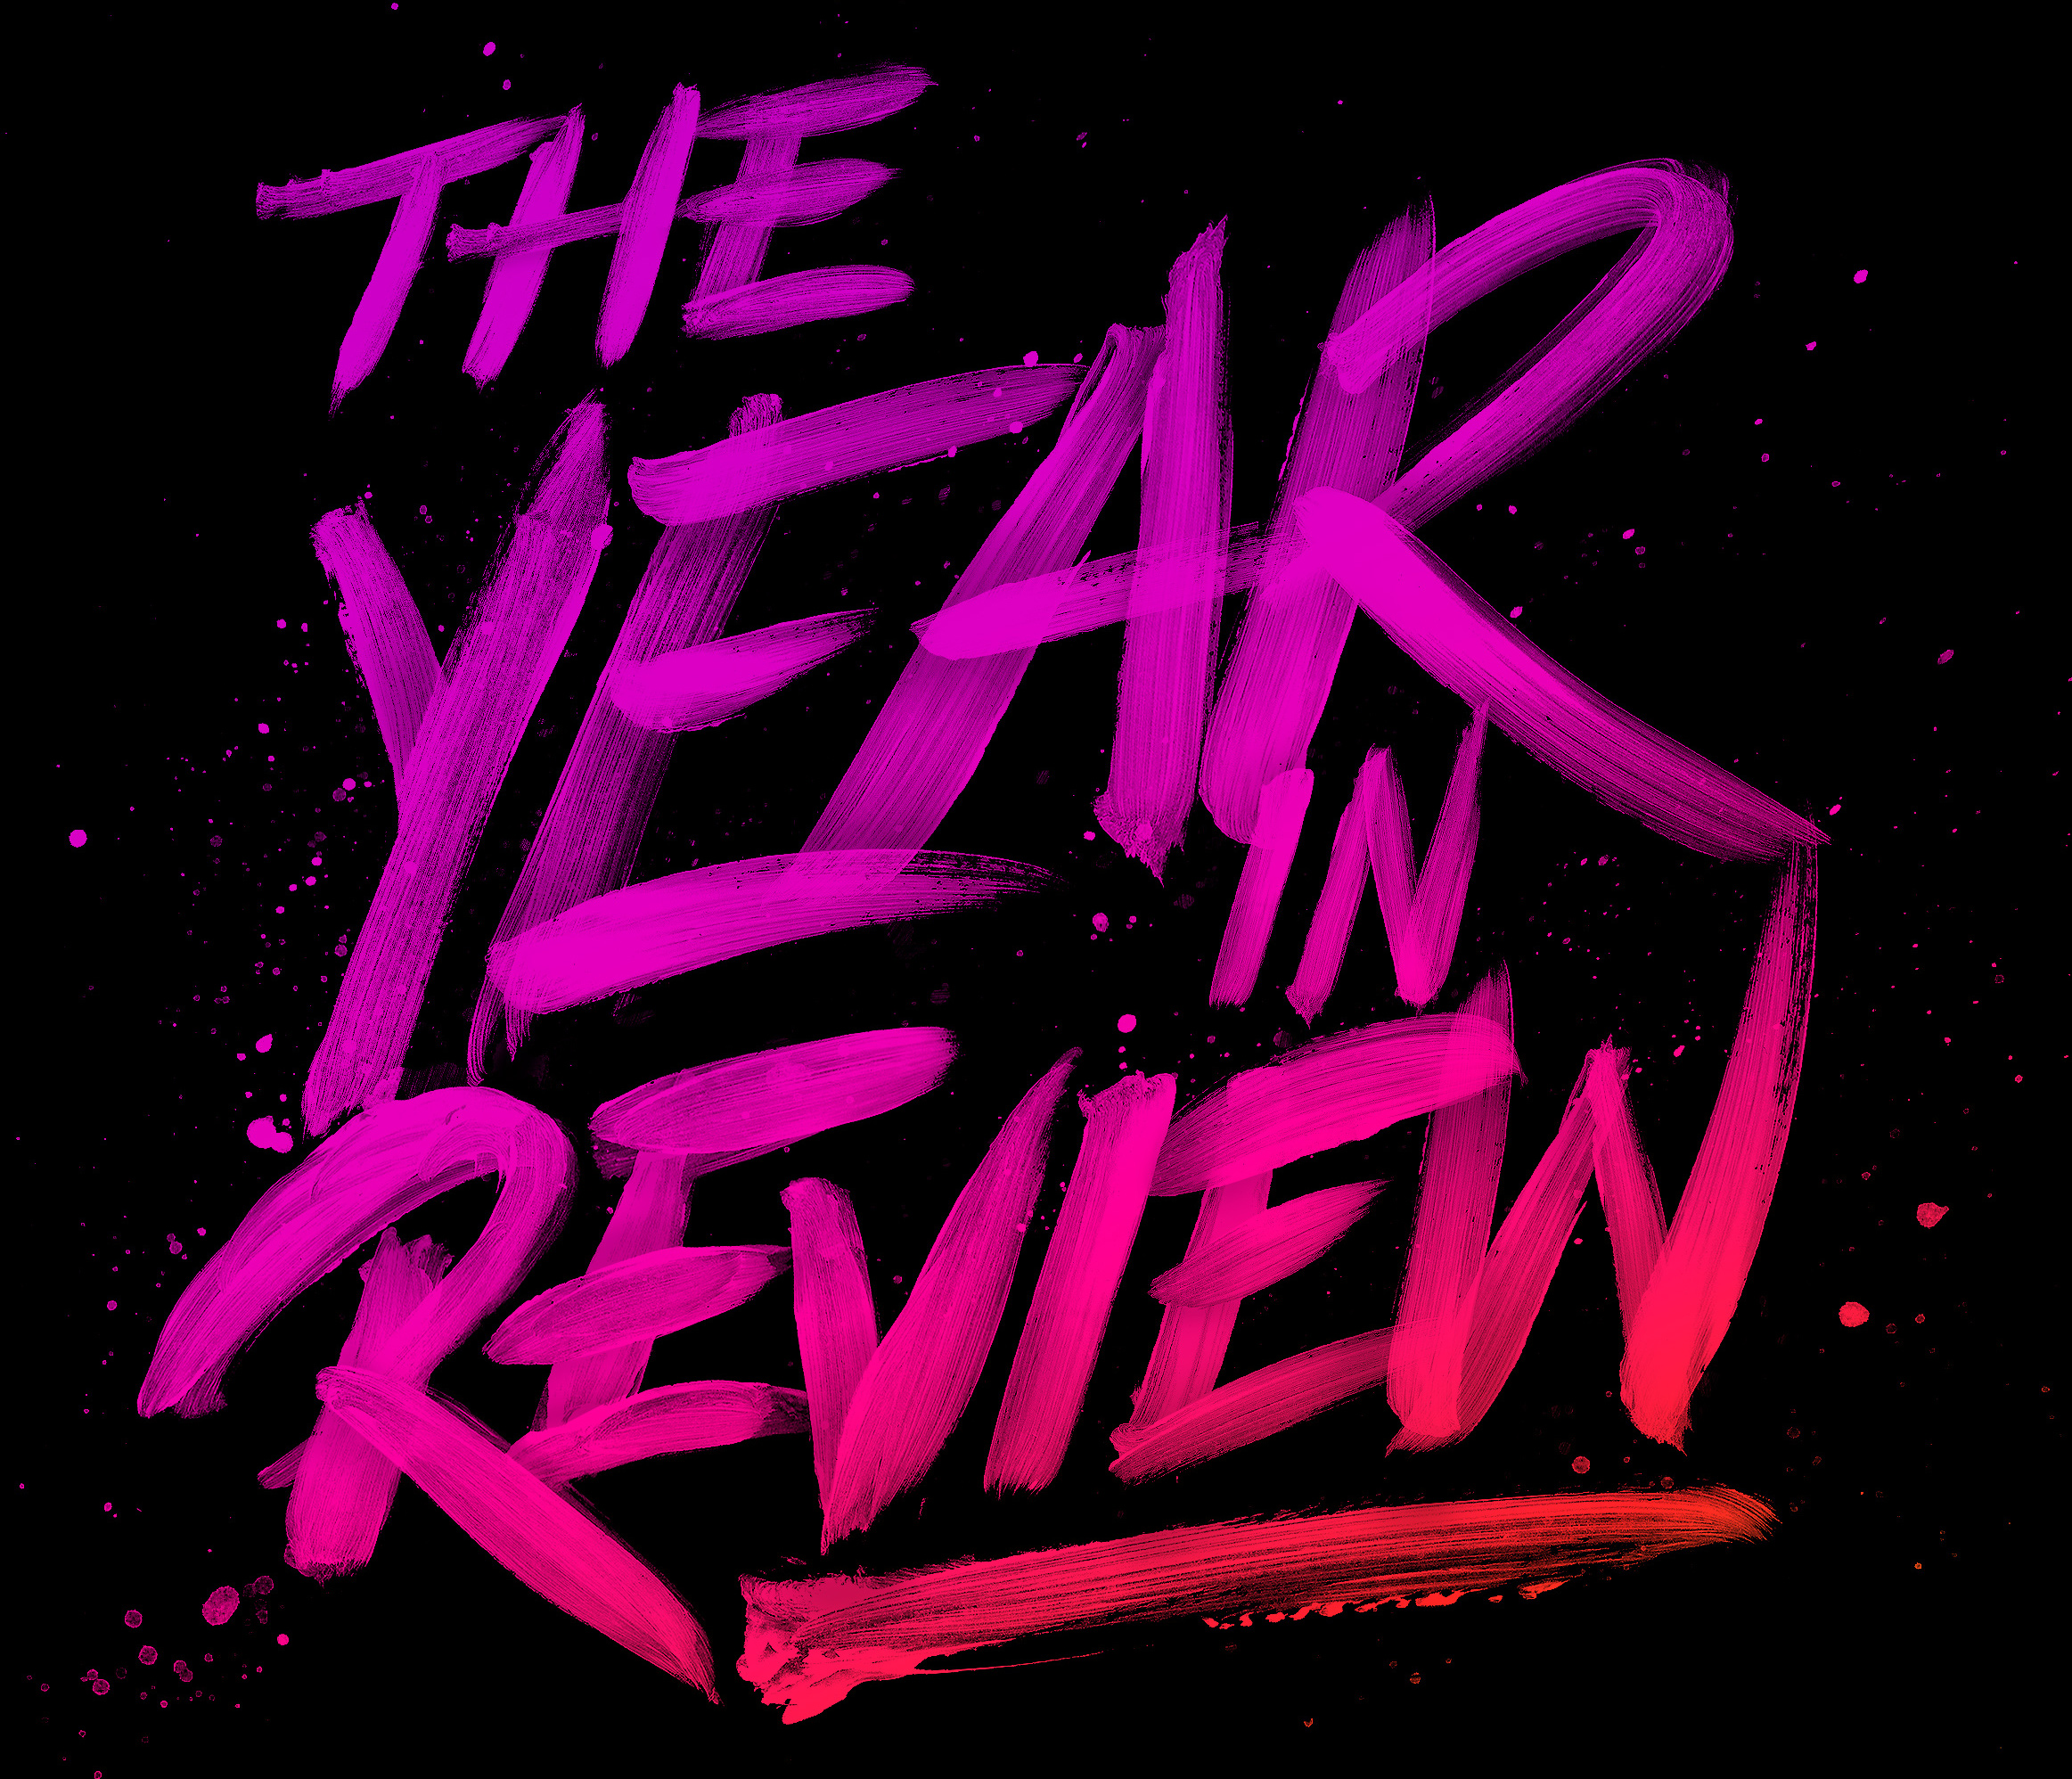 AM-CD-YearinReview-Lettering-cropped.jpg